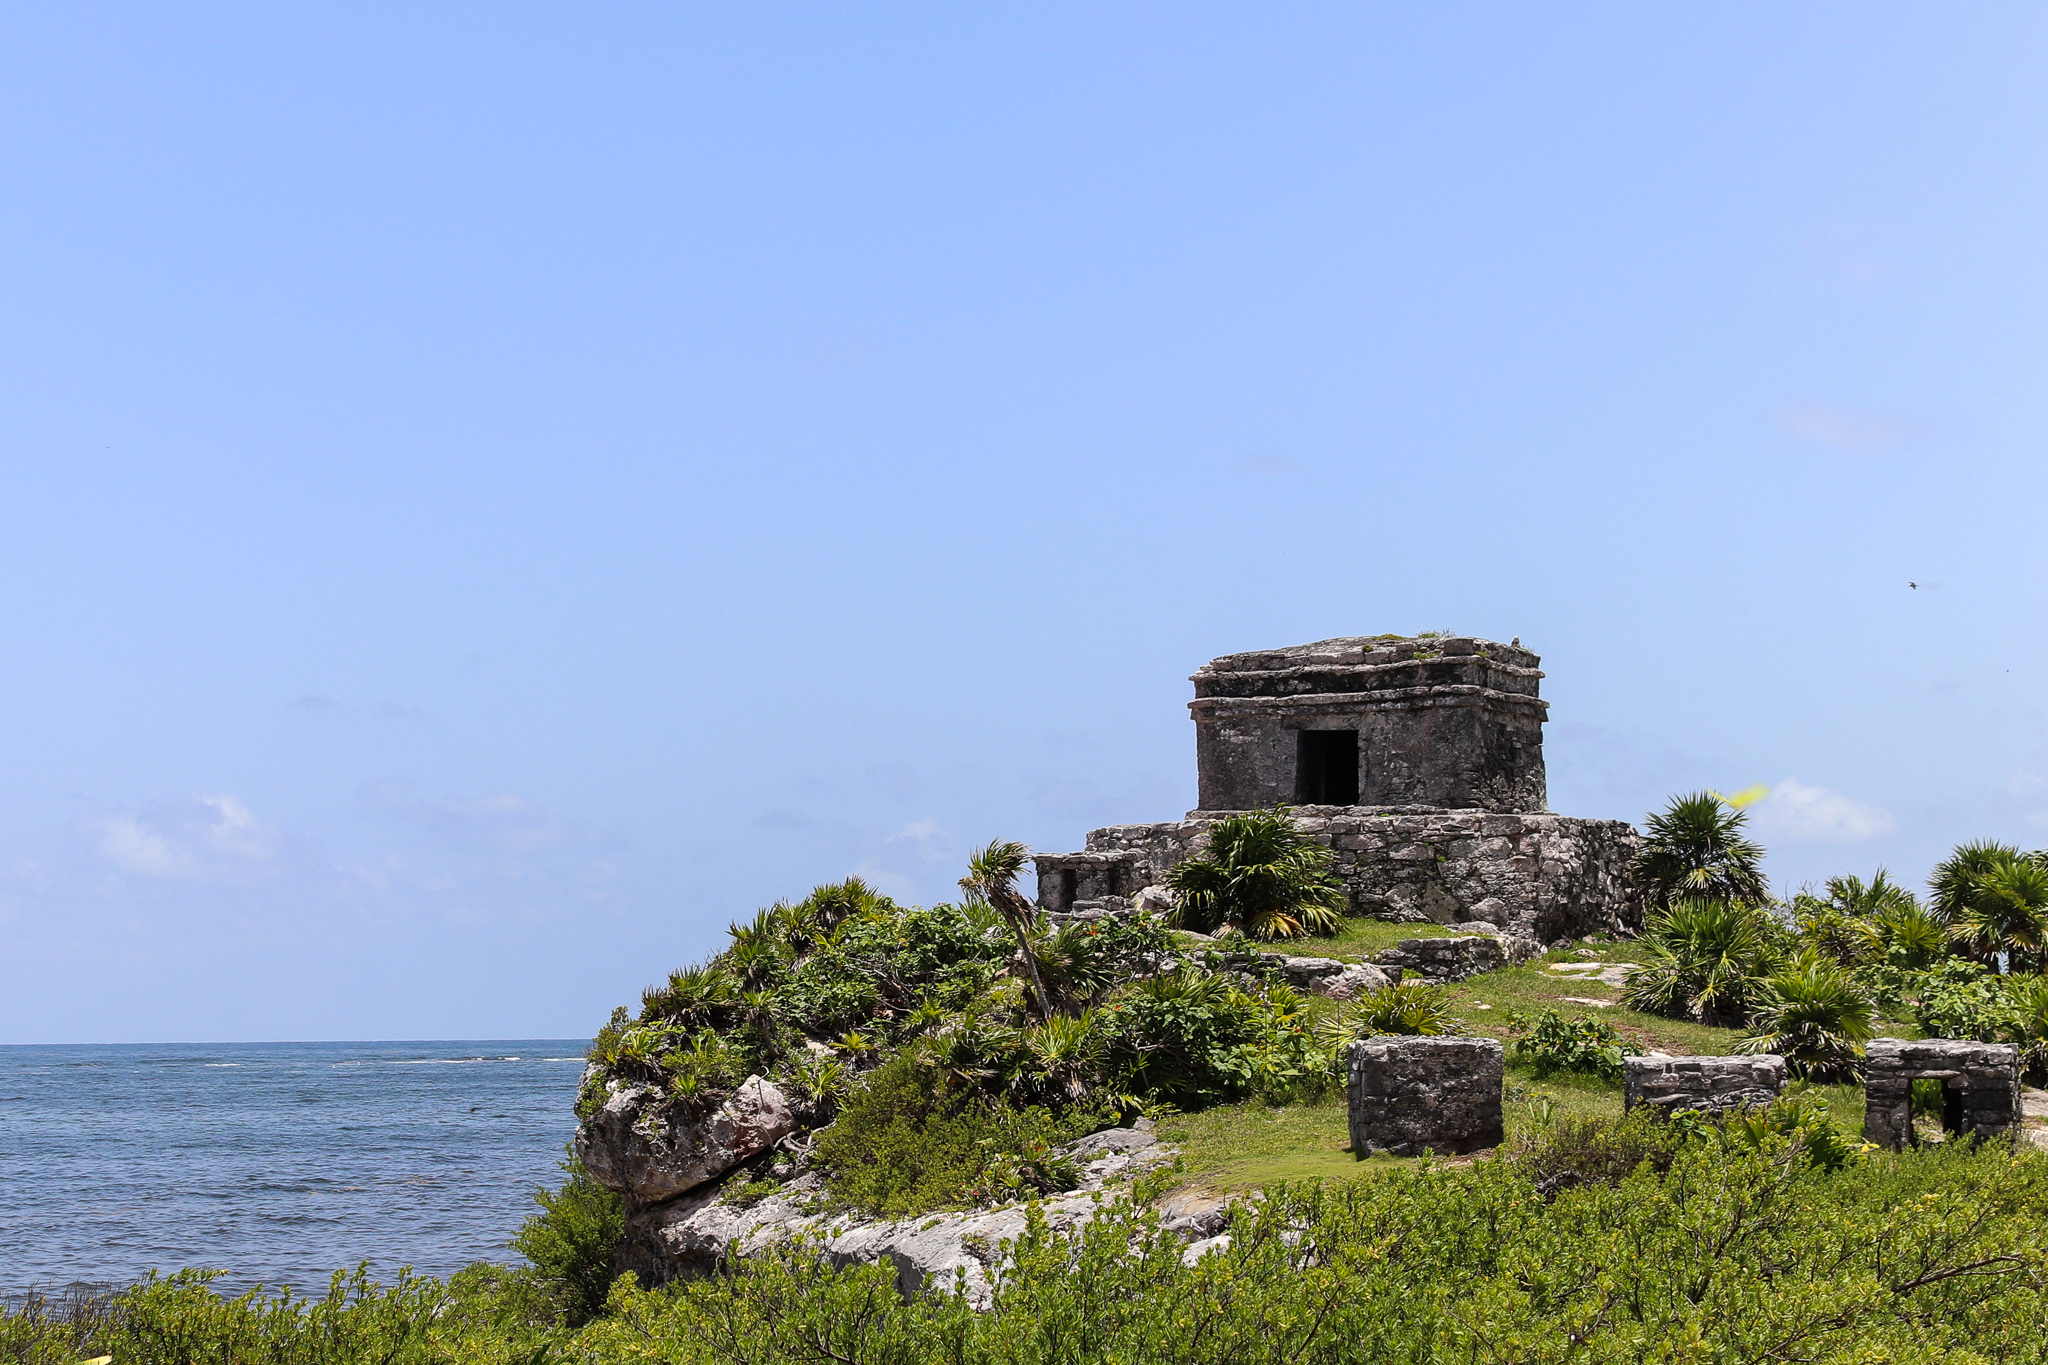 Getting to the Tulum Ruins From Playa Del Carmen